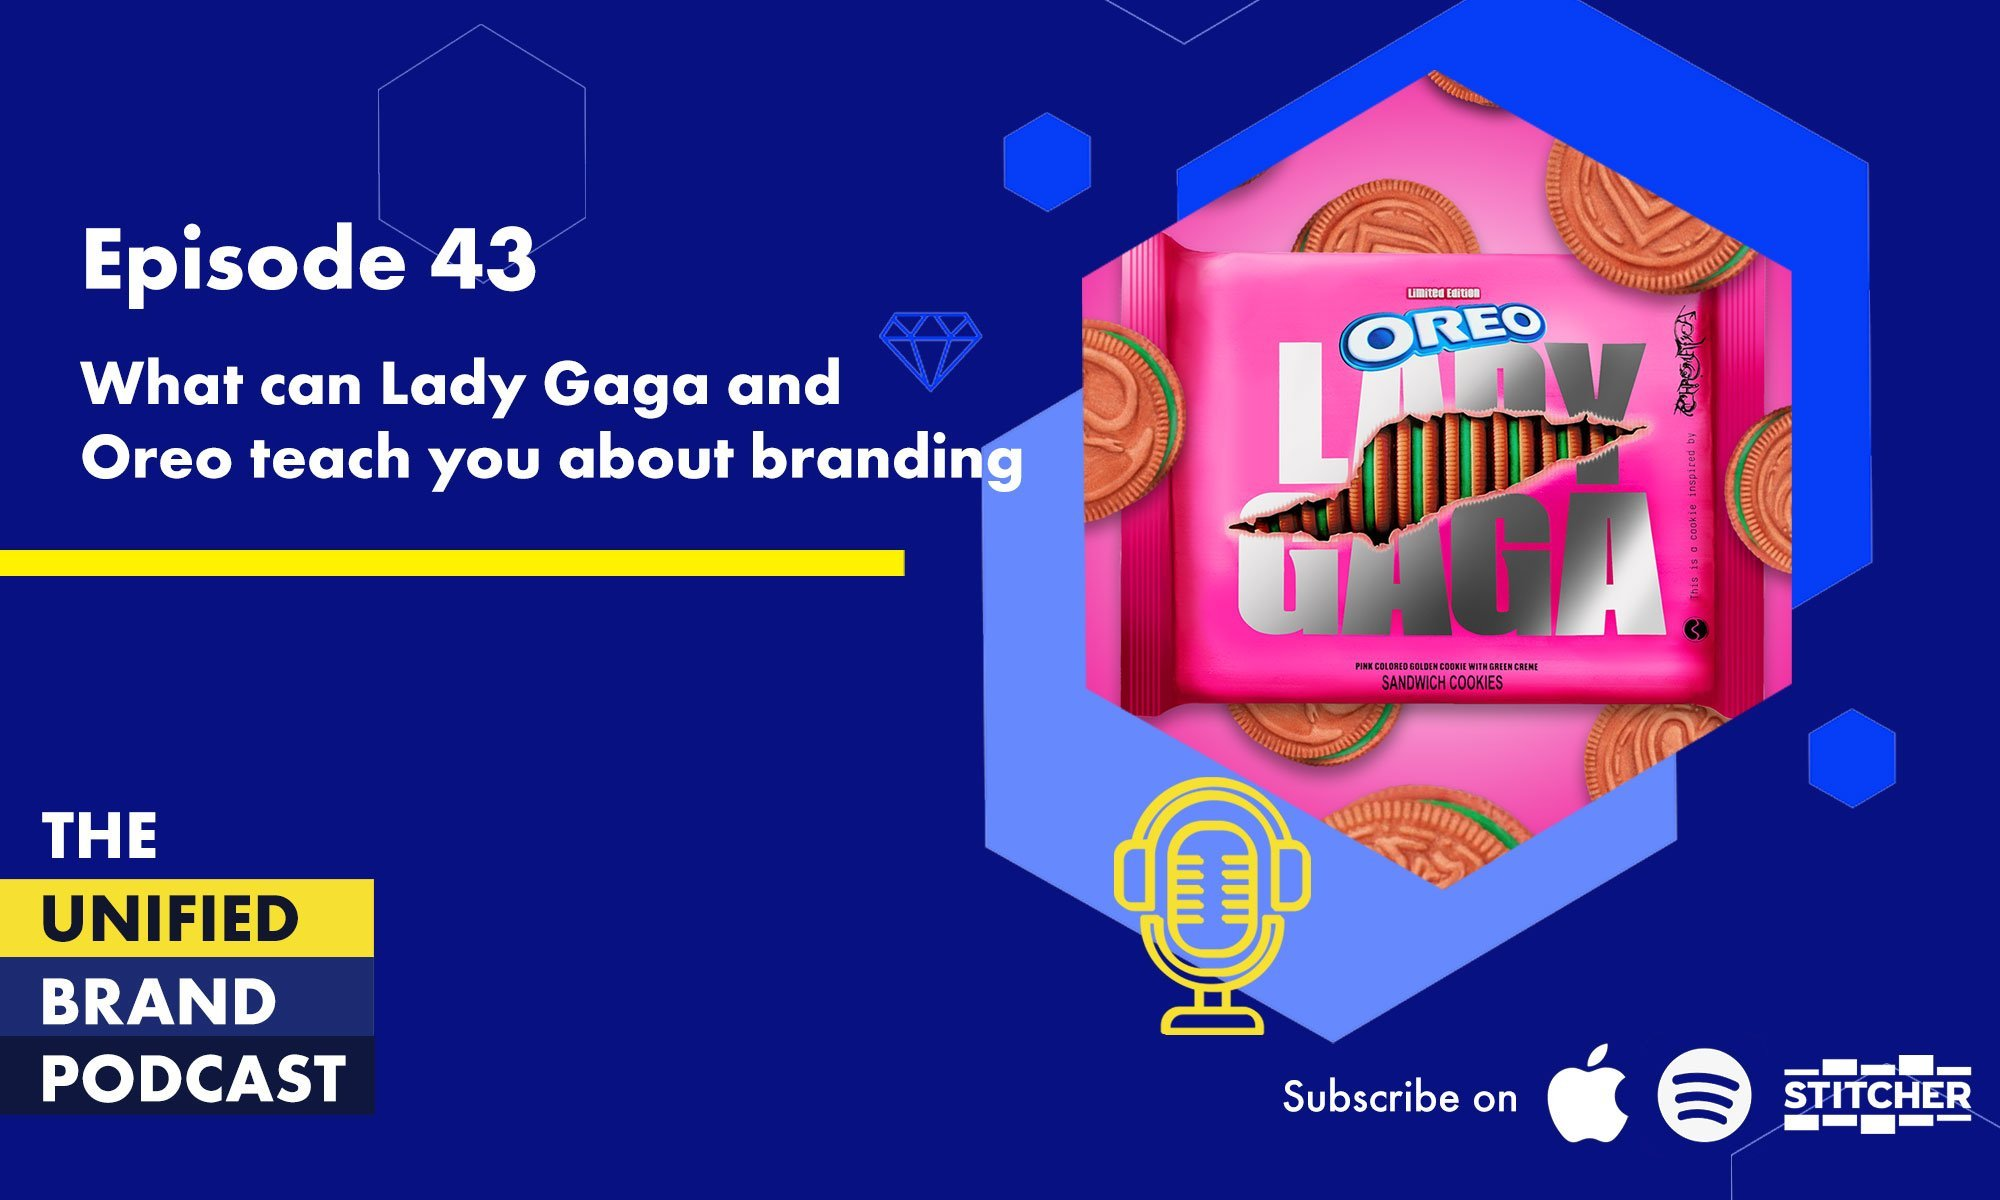 What can Lady Gaga and Oreo teach you about co-branding?